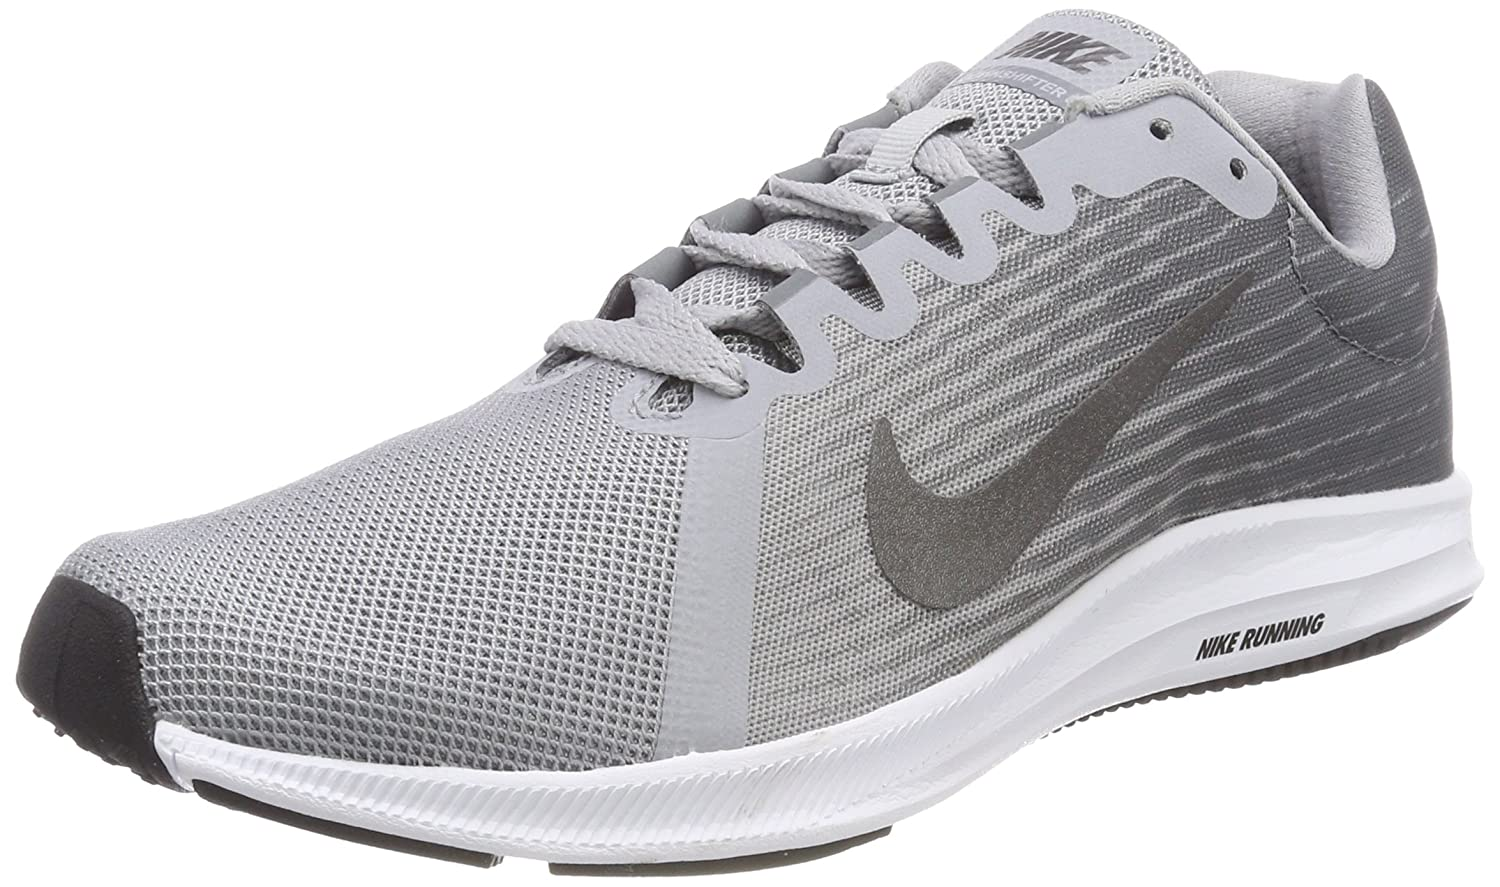 Nike Chaussures Downshifter 8 Chaussures de Sport Homme Gris Nike